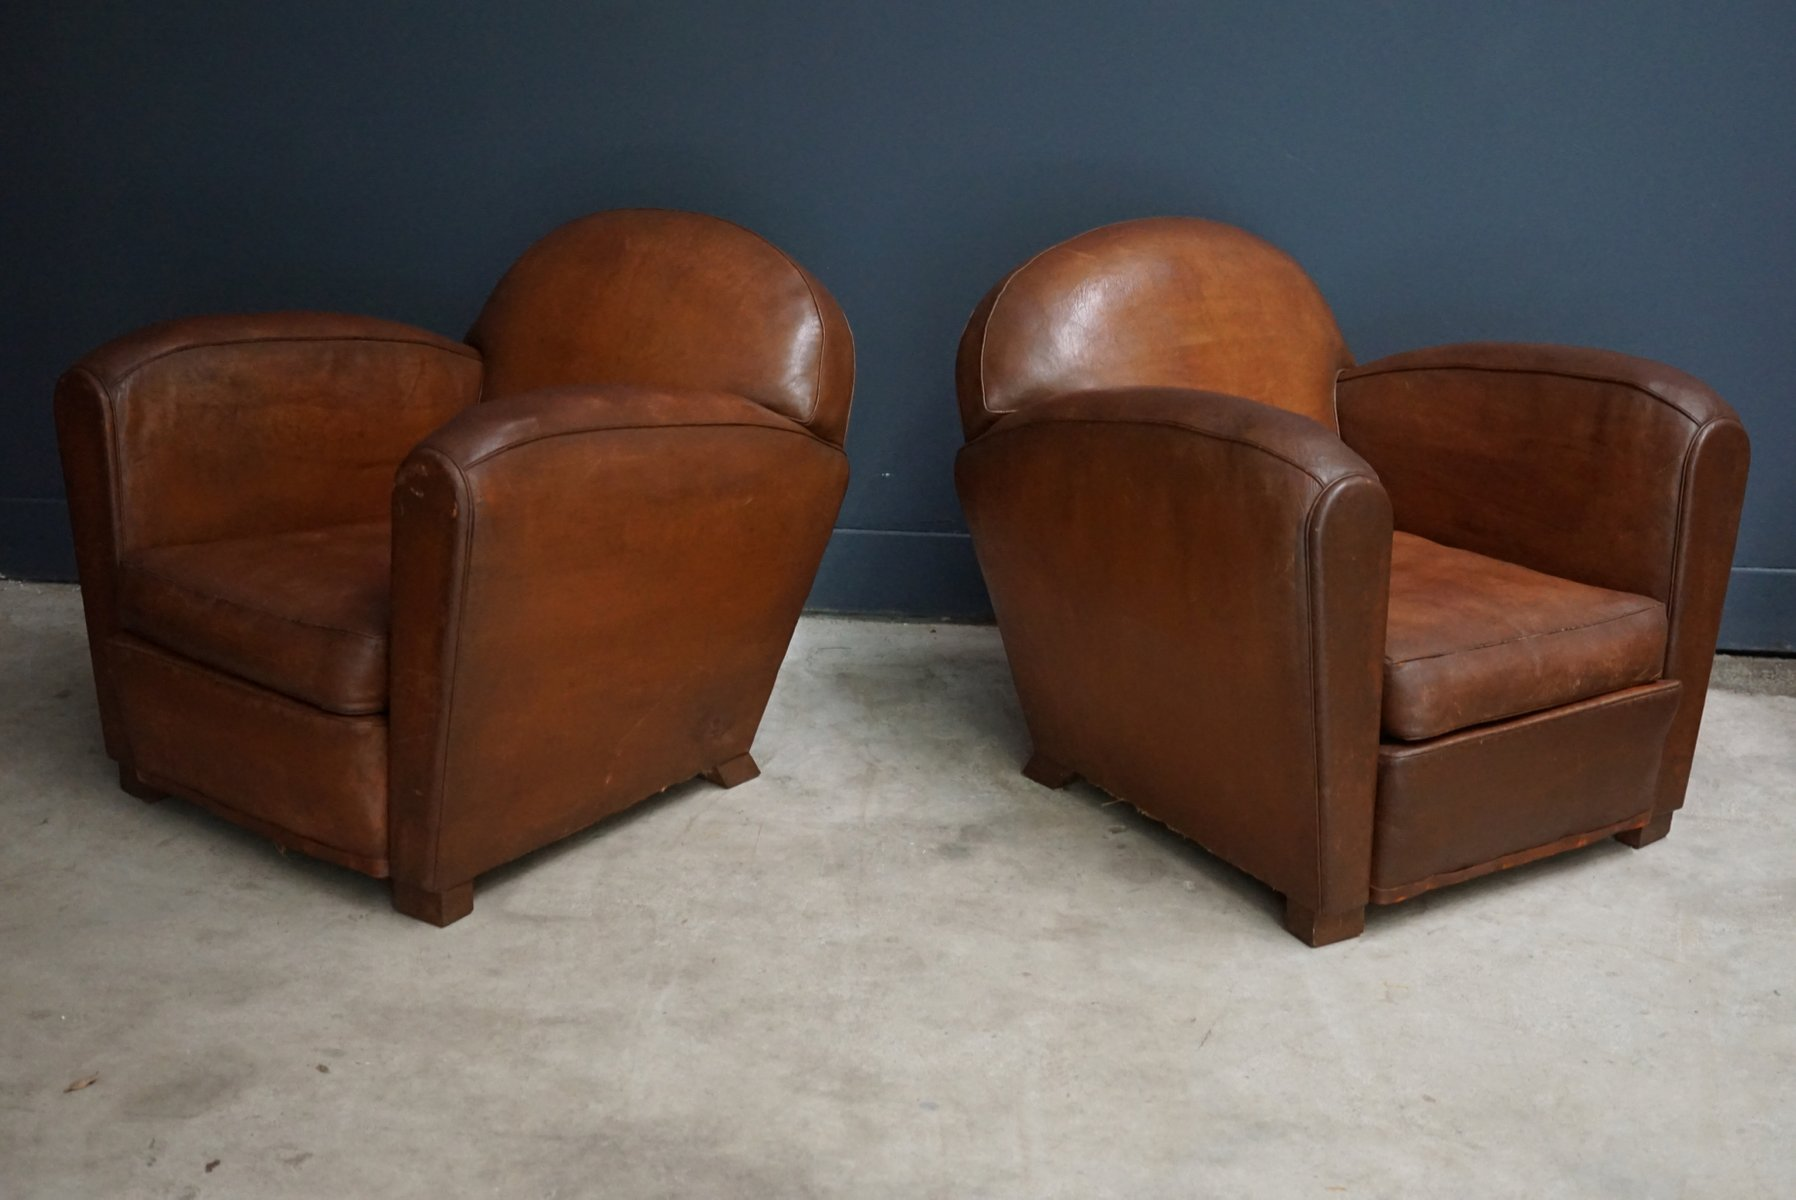 Vintage French Cognac Leather Club Chairs Set Of 2